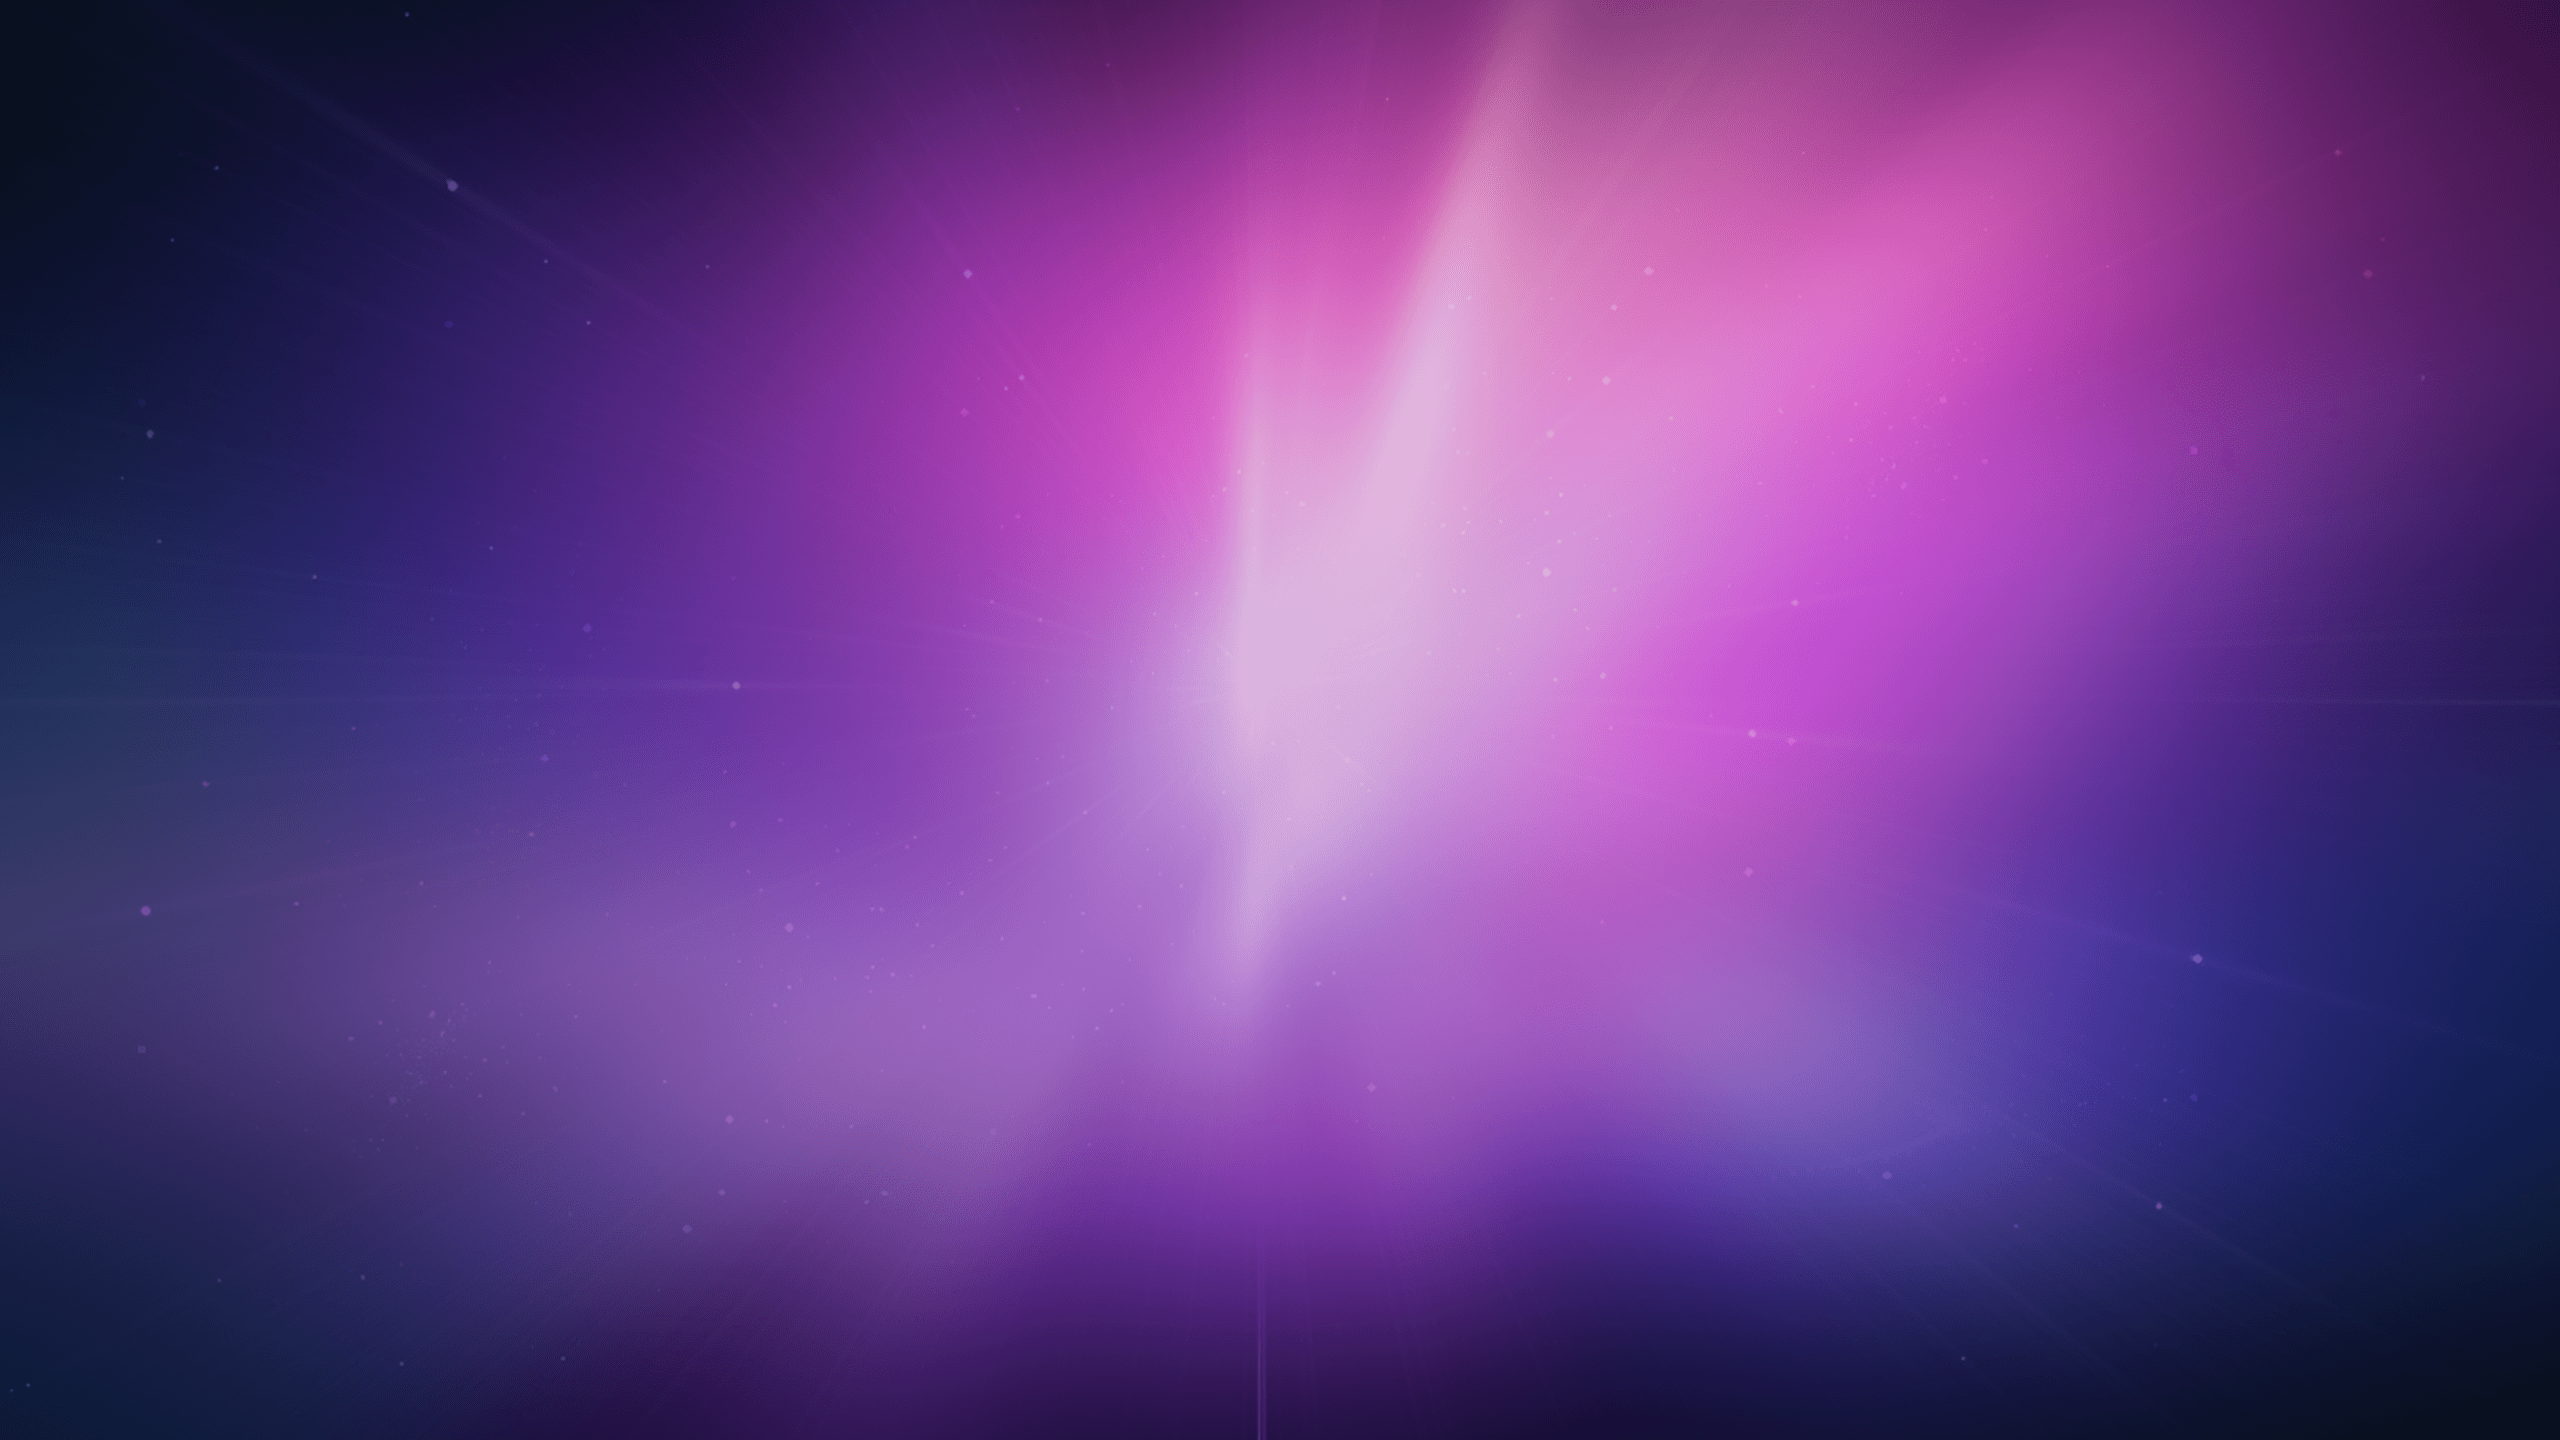 Pink Mac Wallpapers 2560x1440